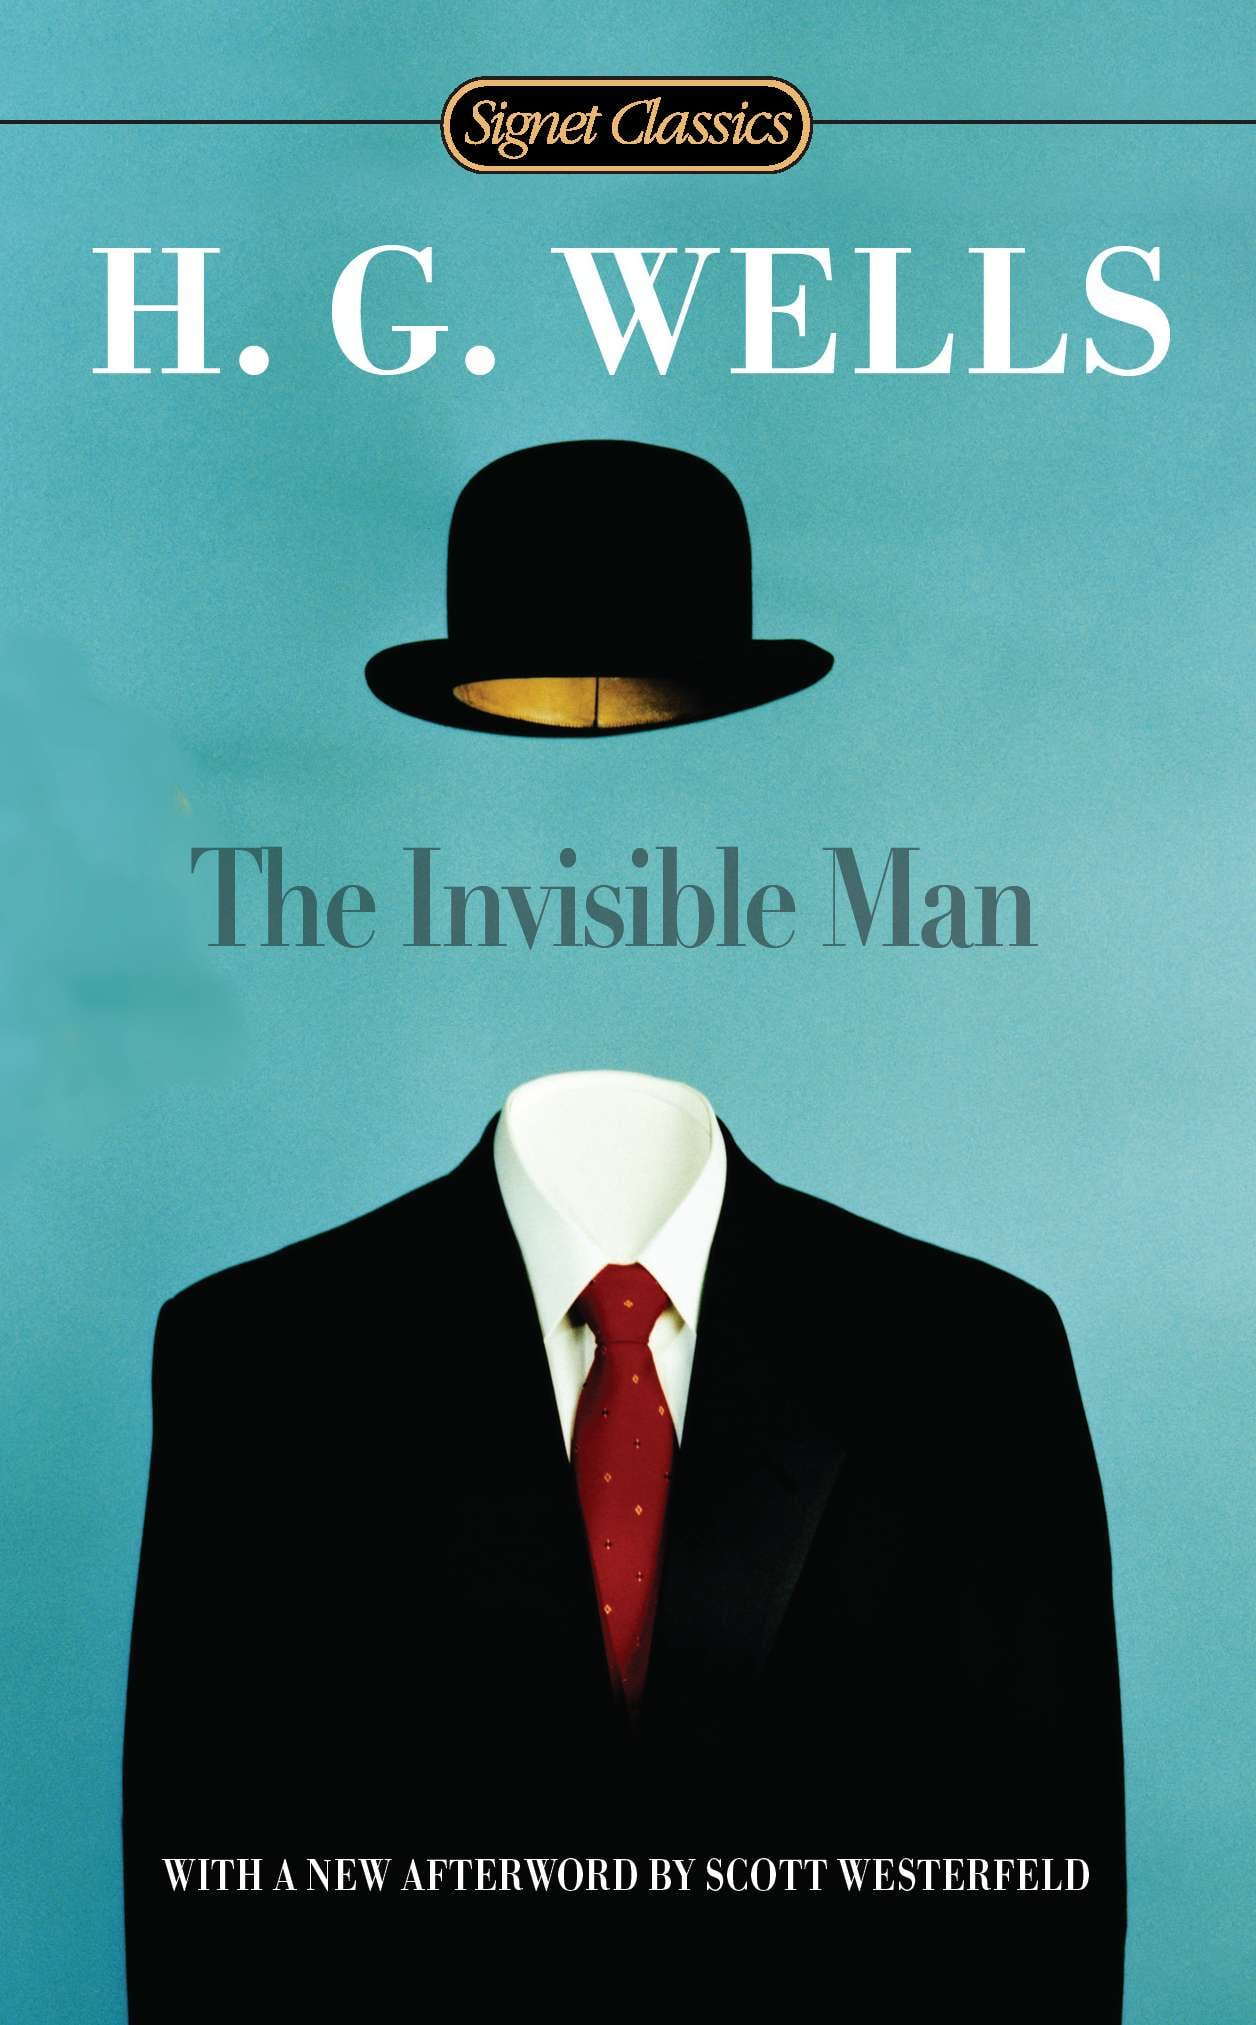 Hold Up, The Invisible Man Movie Looks WAY Different Than the Book